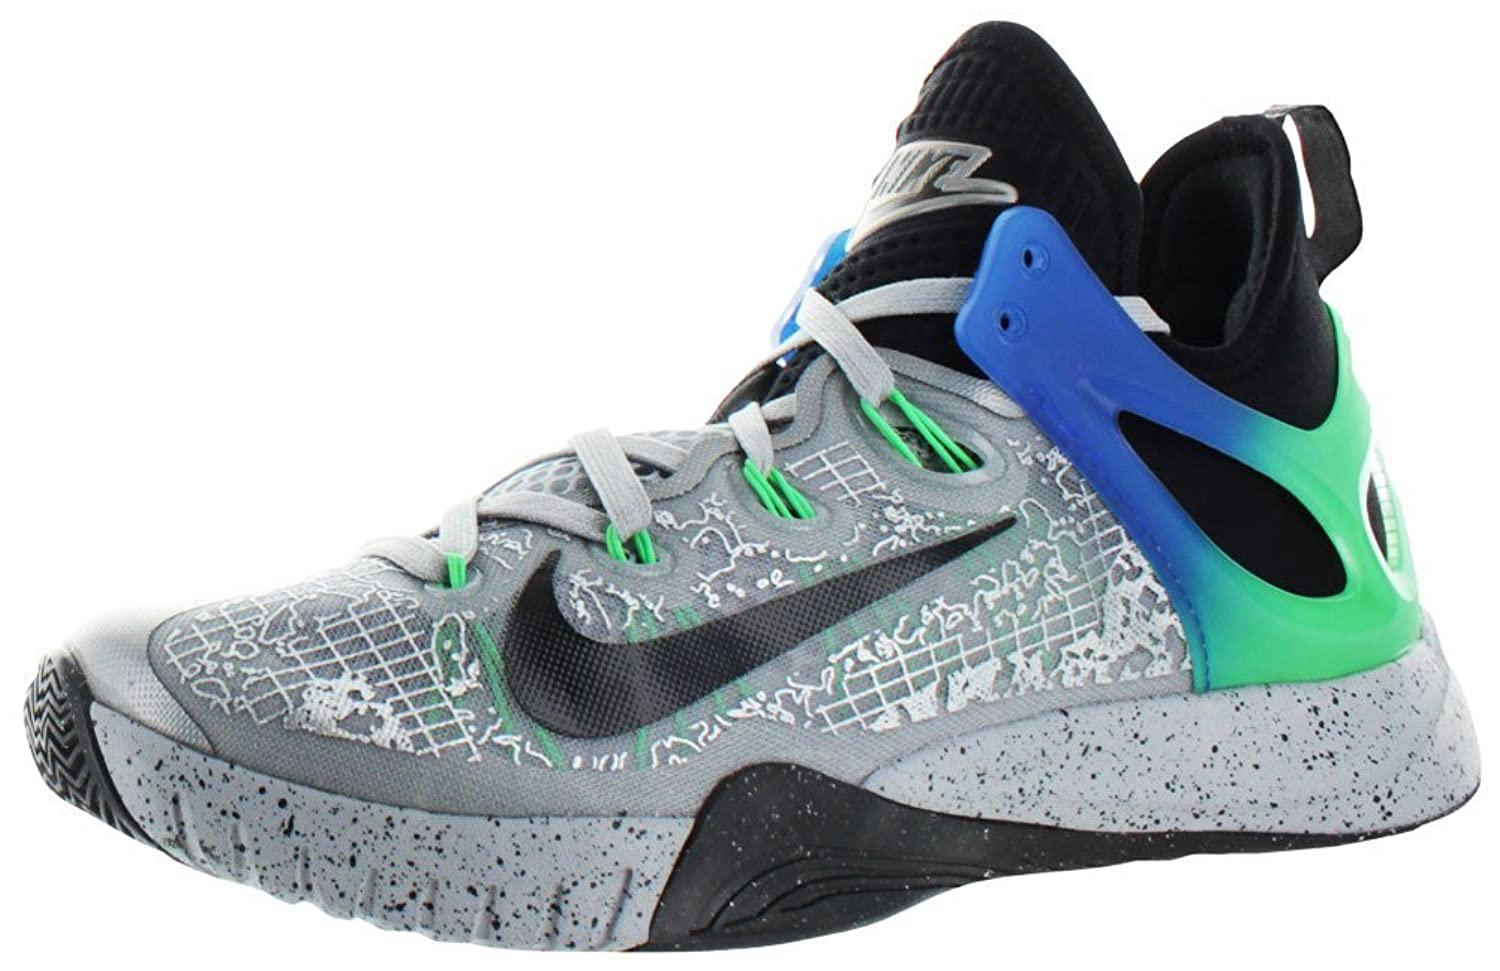 size 40 3049f 844e5 ... uk nike zoom hyperrev 2015 all star mens basketball shoes durable  modeling. a1aeb dca07